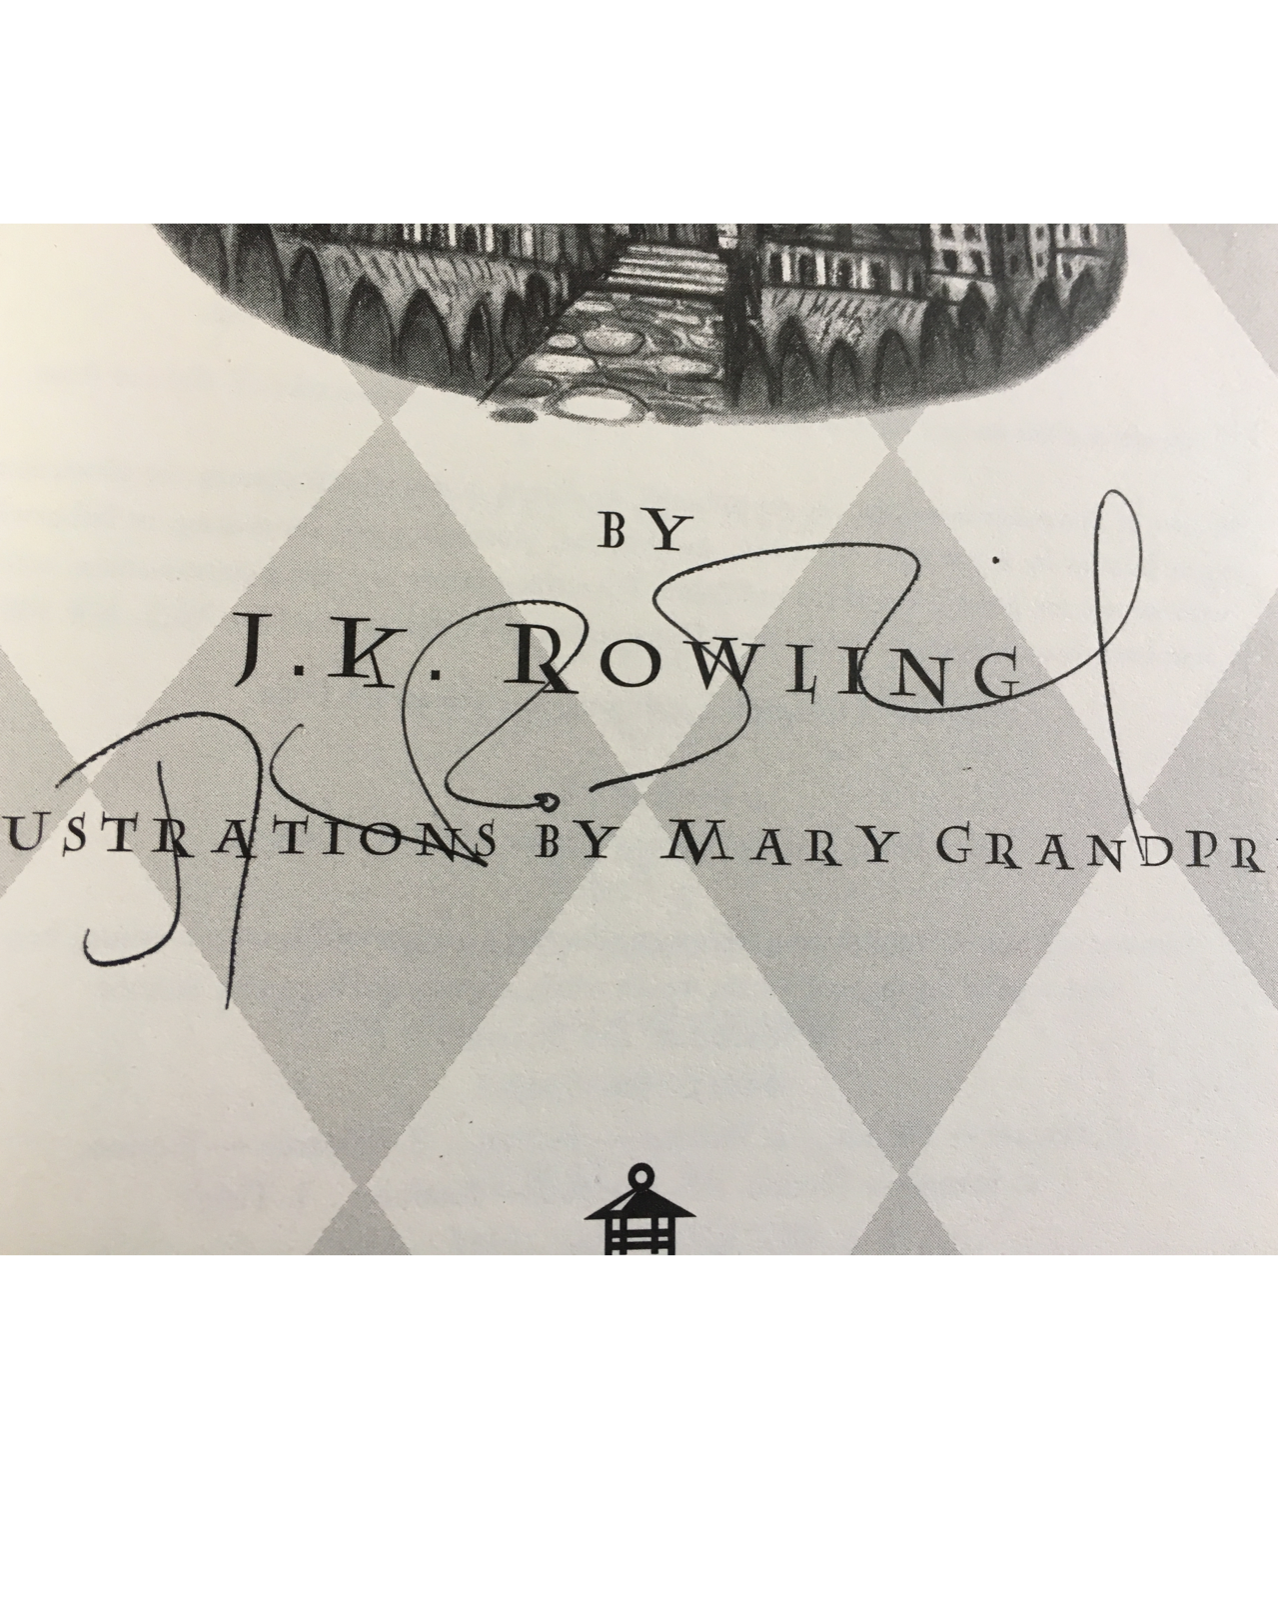 JK Rowling signature forgery found inside a Harry Potter Potter and the Sorcerer's Stone